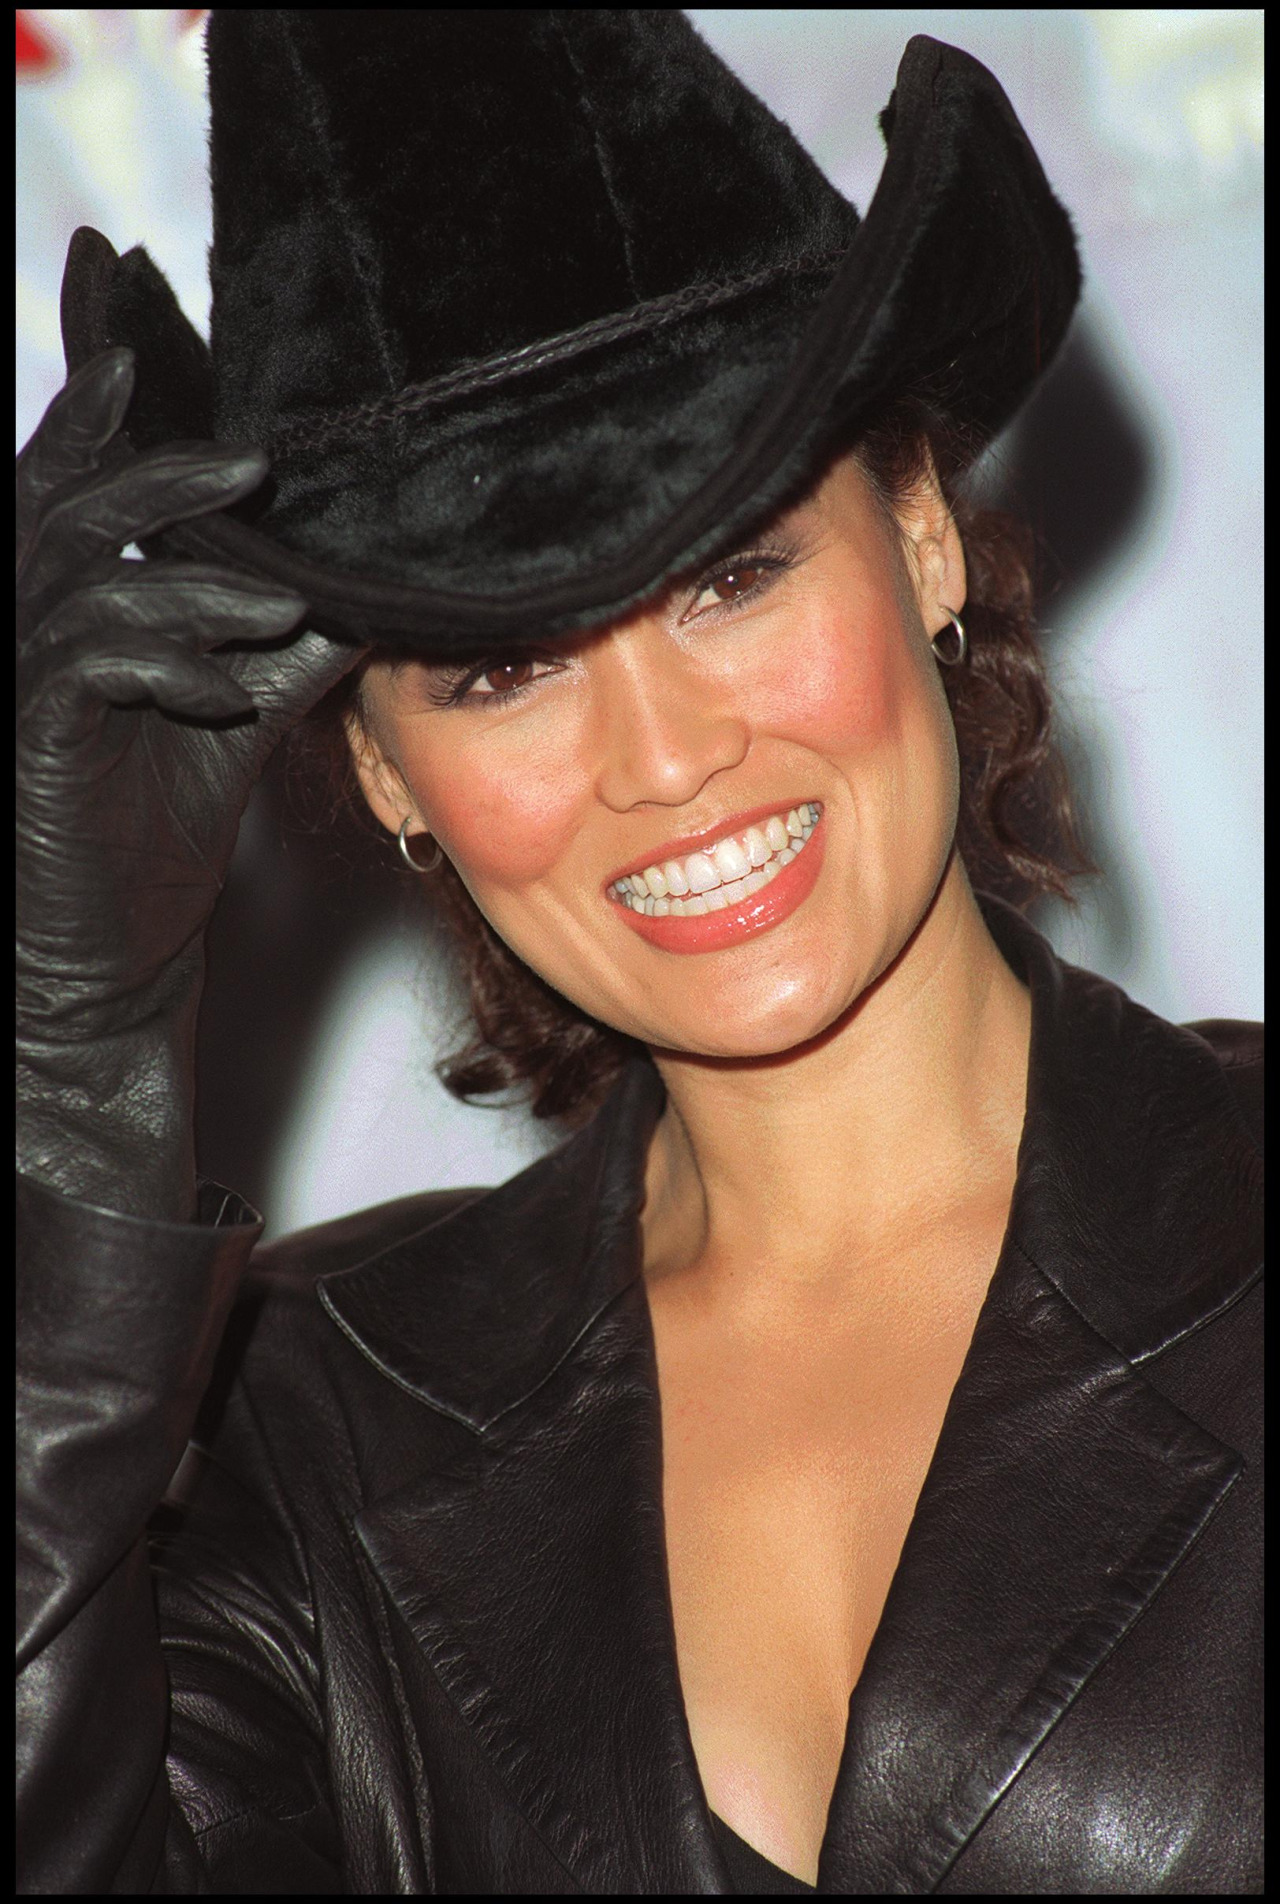 Leather Leather Leather Blog: Tia Carrere Leather Gloves